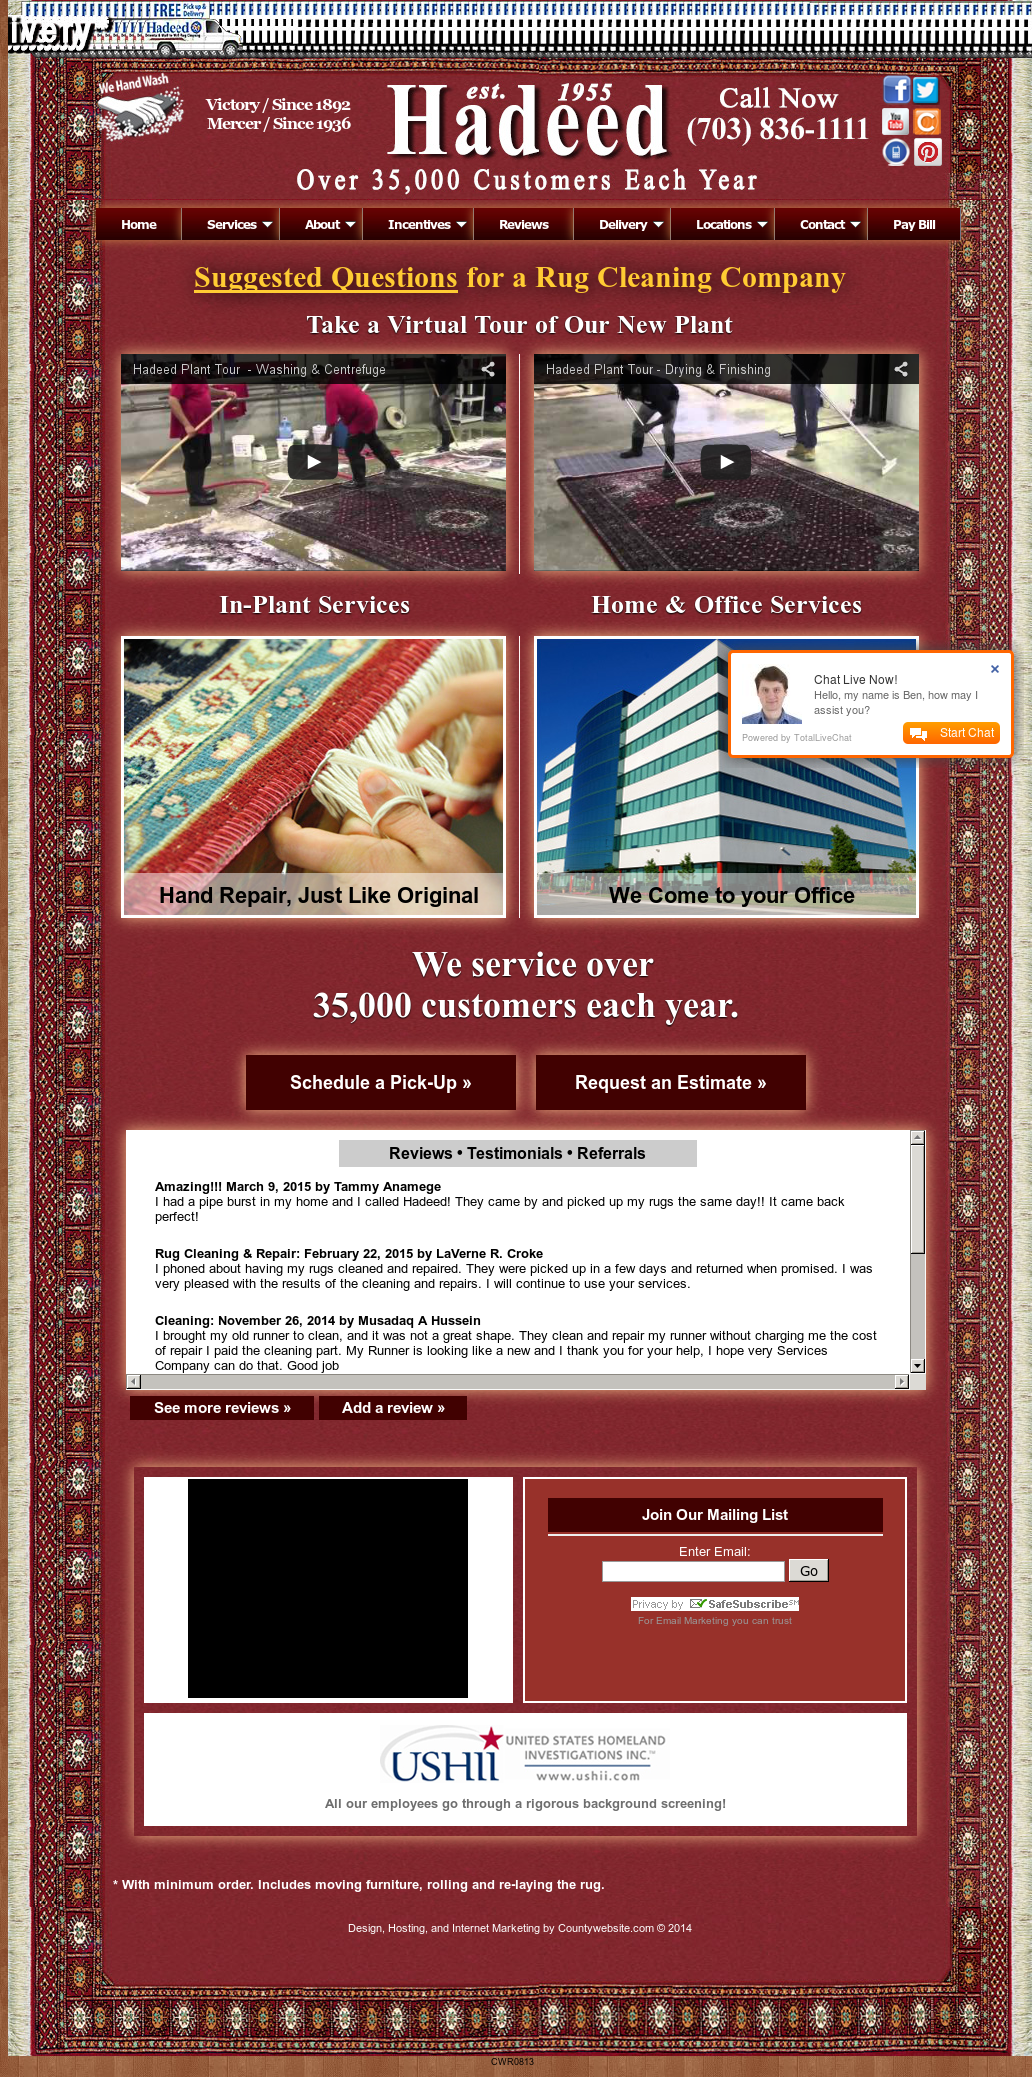 Hadeed Oriental Rug Cleaning Competitors, Revenue and Employees